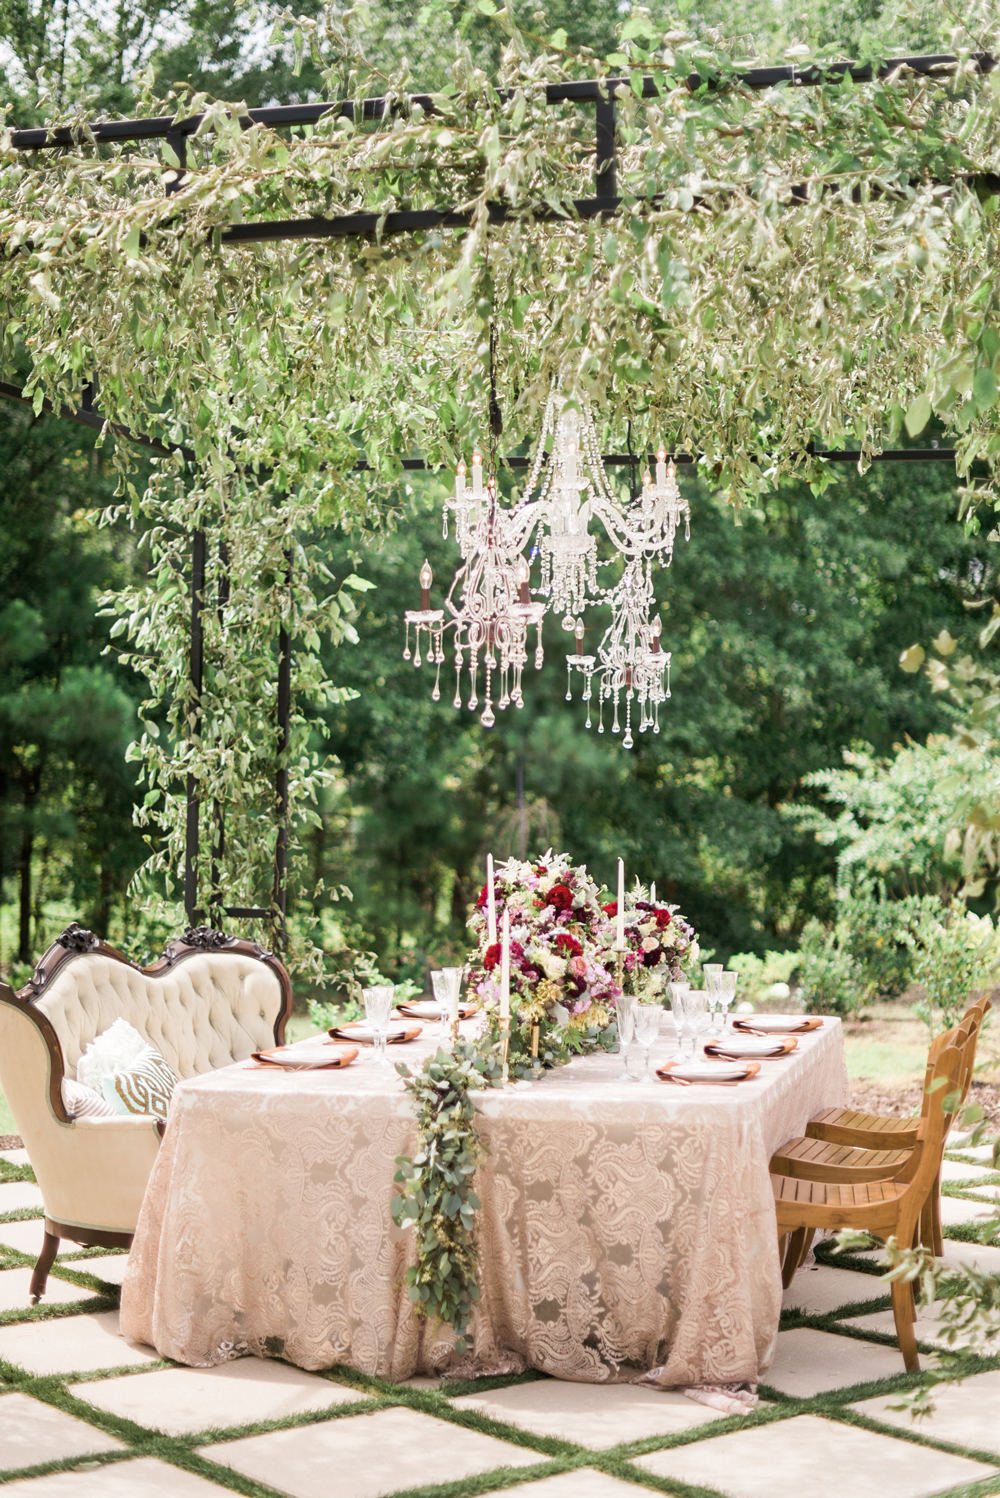 lace table setting beneath greenery and crystal chandelier